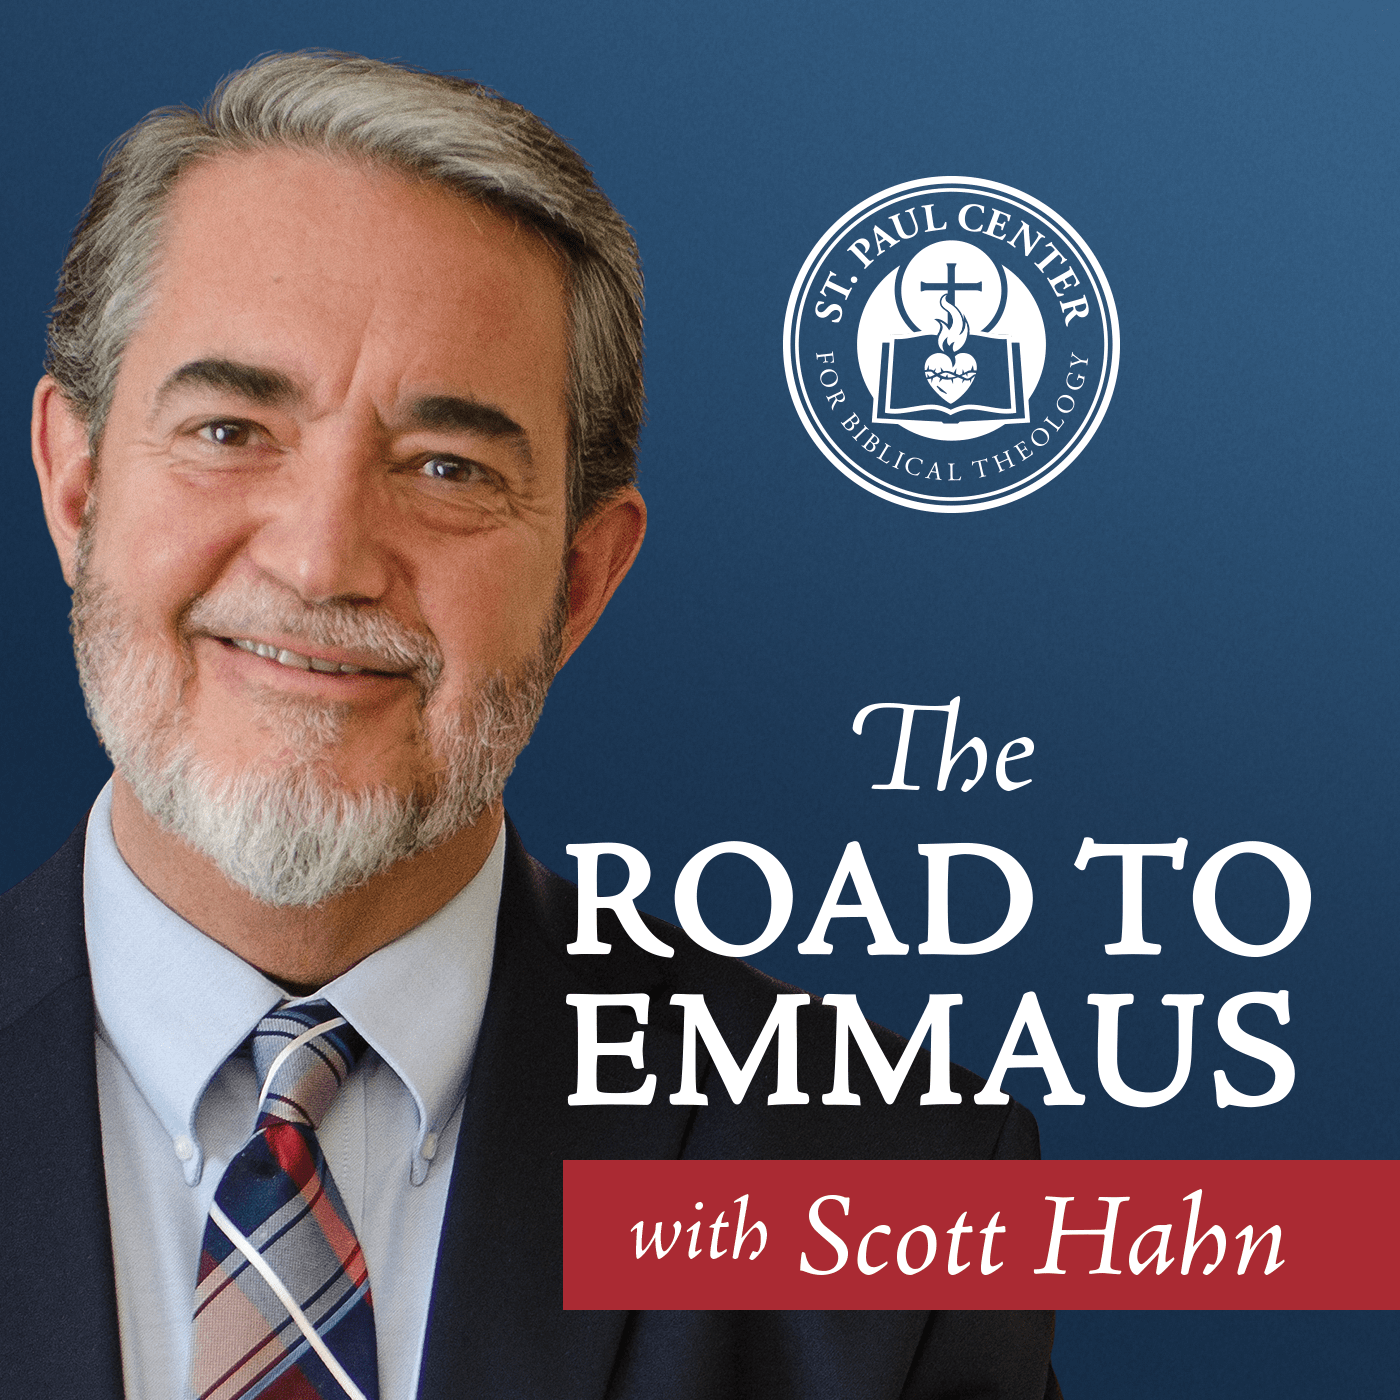 The Road to Emmaus – The Fatherhood of the Priest